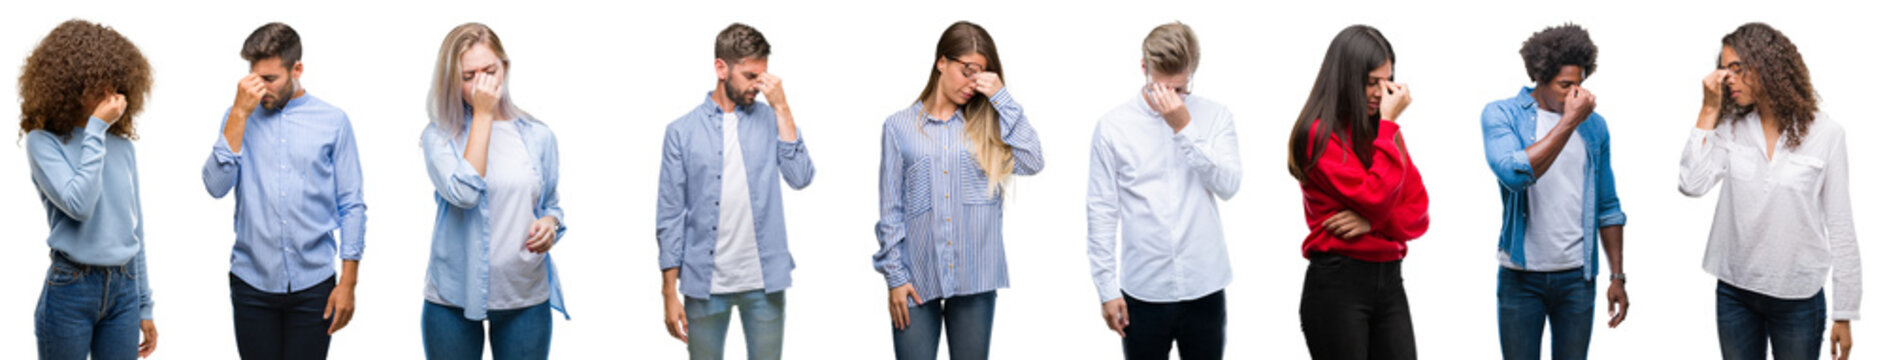 Composition of african american, hispanic and caucasian group of people over isolated white background tired rubbing nose and eyes feeling fatigue and headache. Stress and frustration concept.